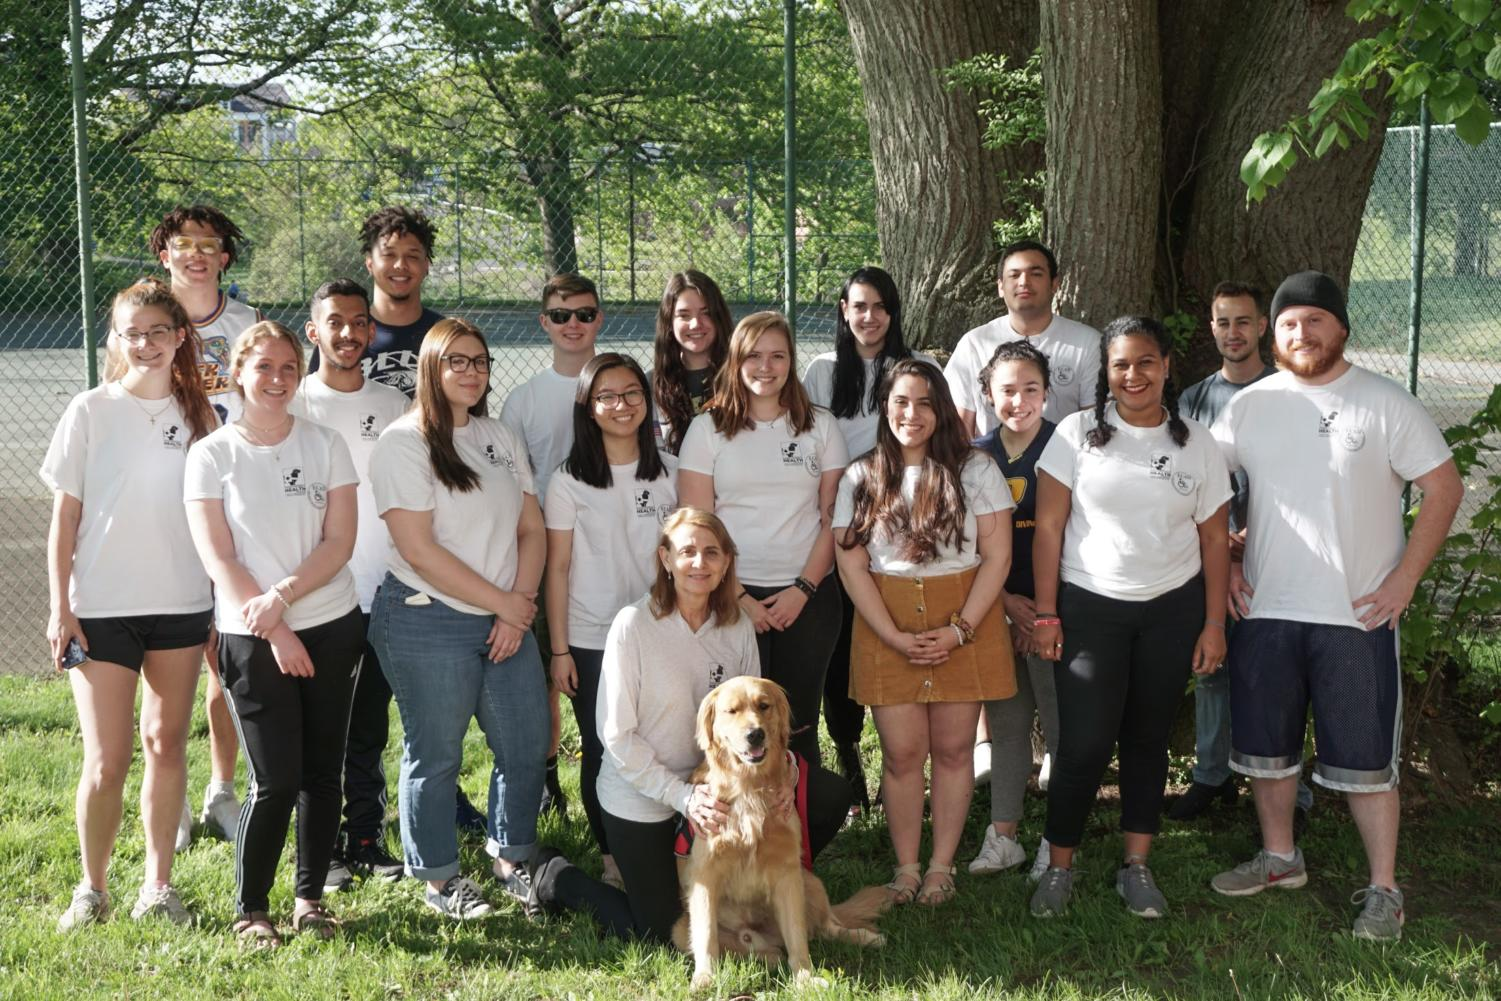 Dr. Singleton, Pawfessor Spirit, and the students in the spring 2019 Canines Assisting in Health course.